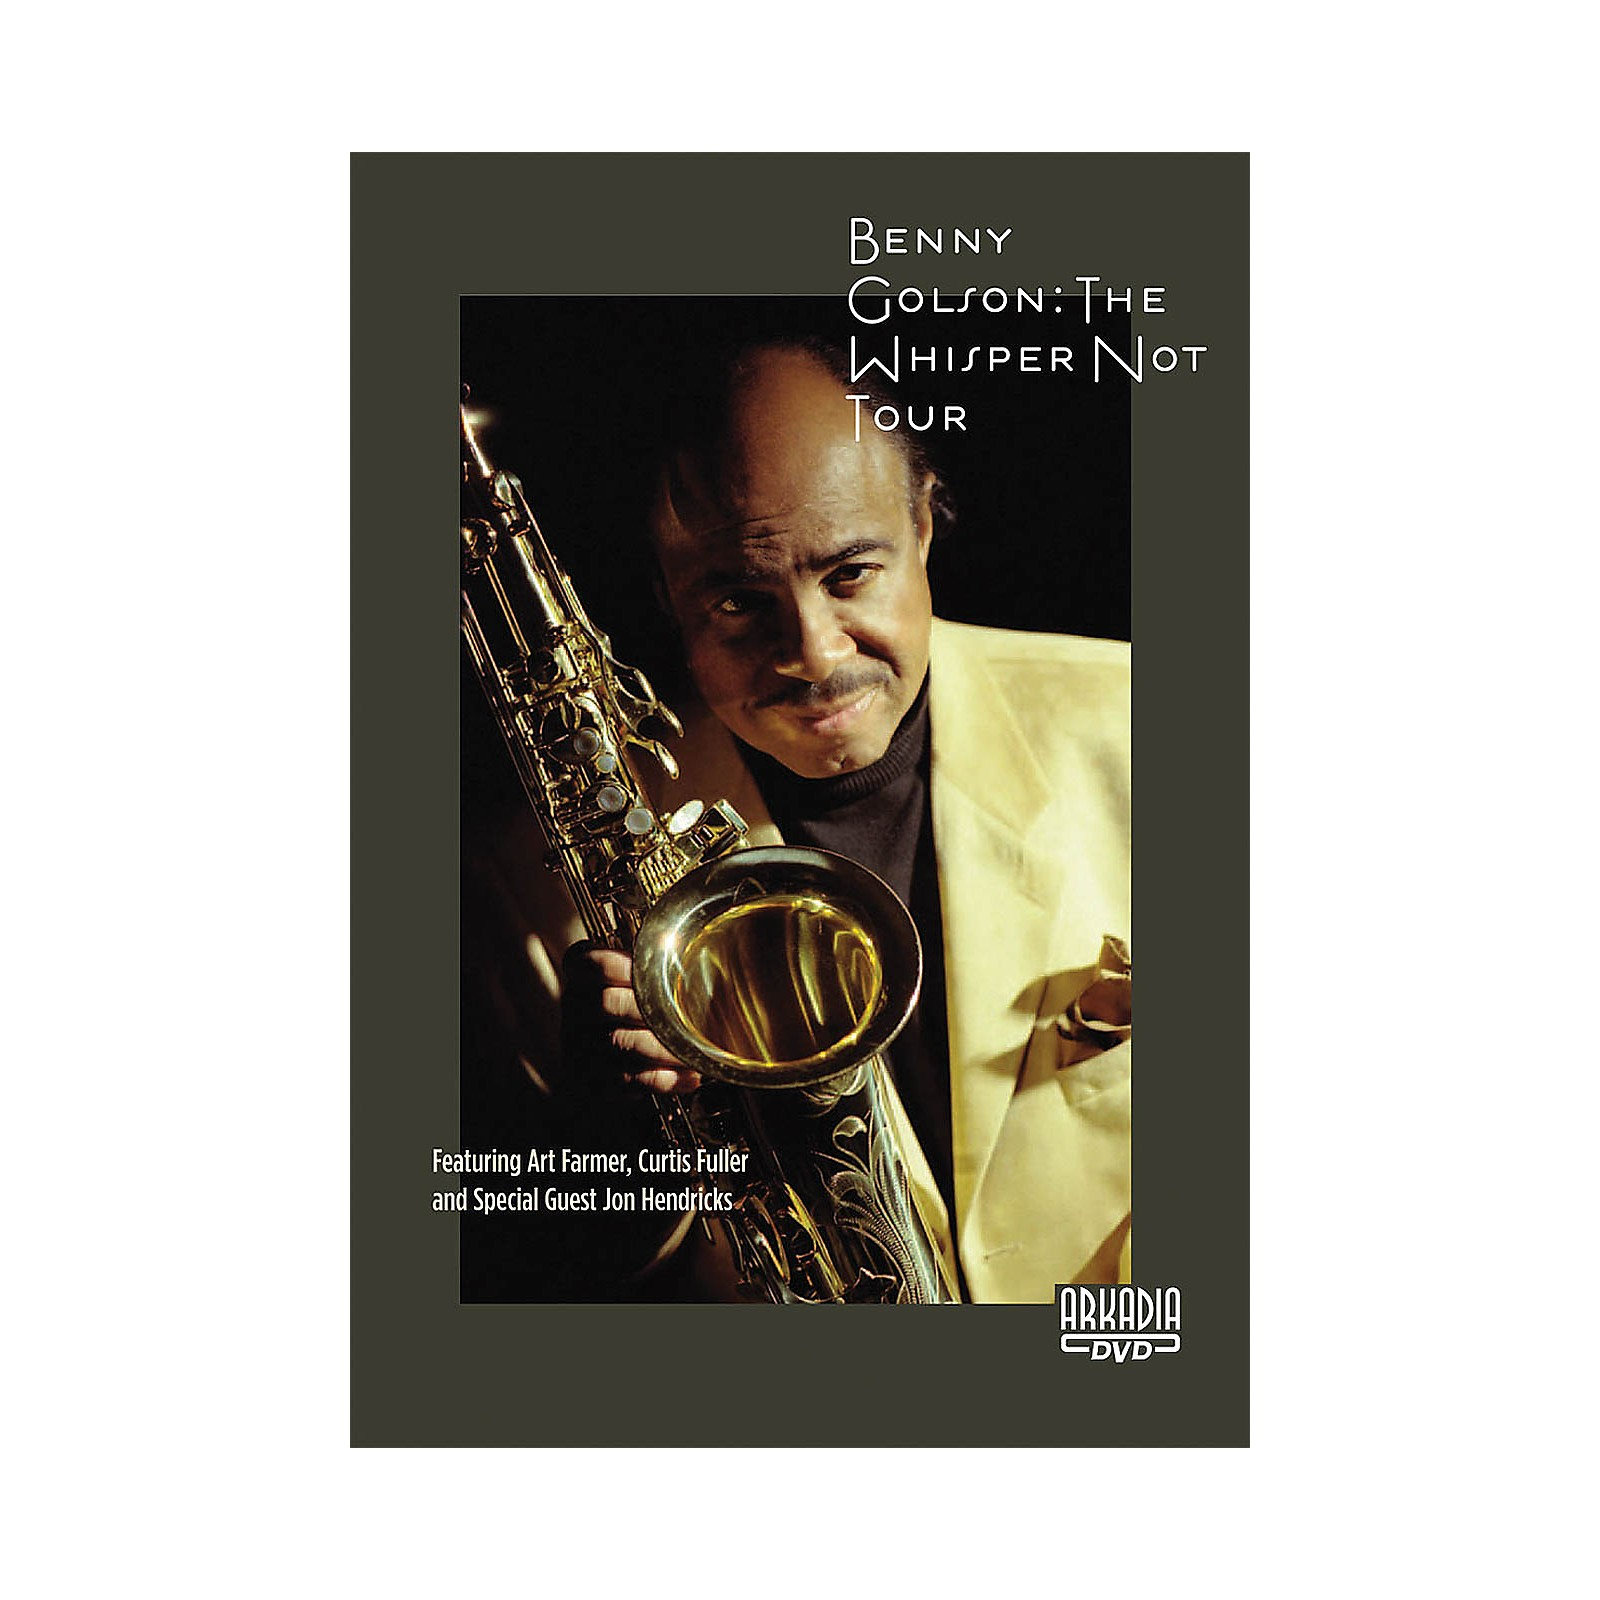 View Video Benny Golson - The Whisper Not Tour Live/DVD Series DVD Performed by Benny Golson